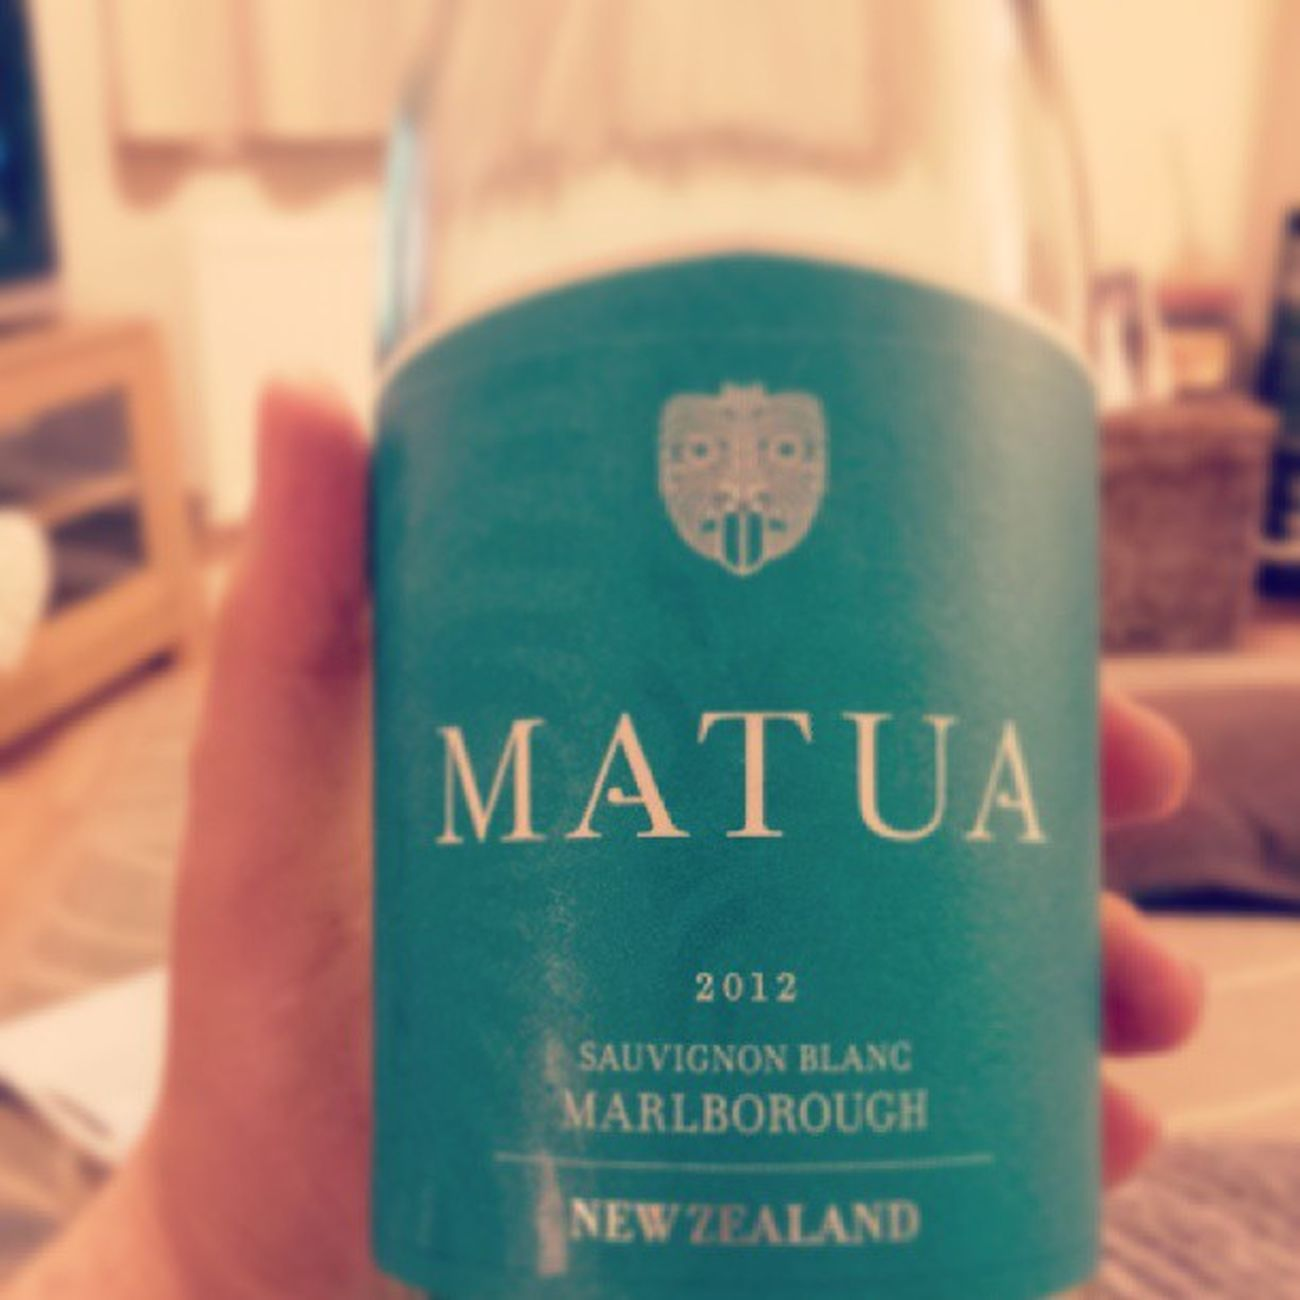 This is gorgeous from Matua LoveMarlborough Newzealand